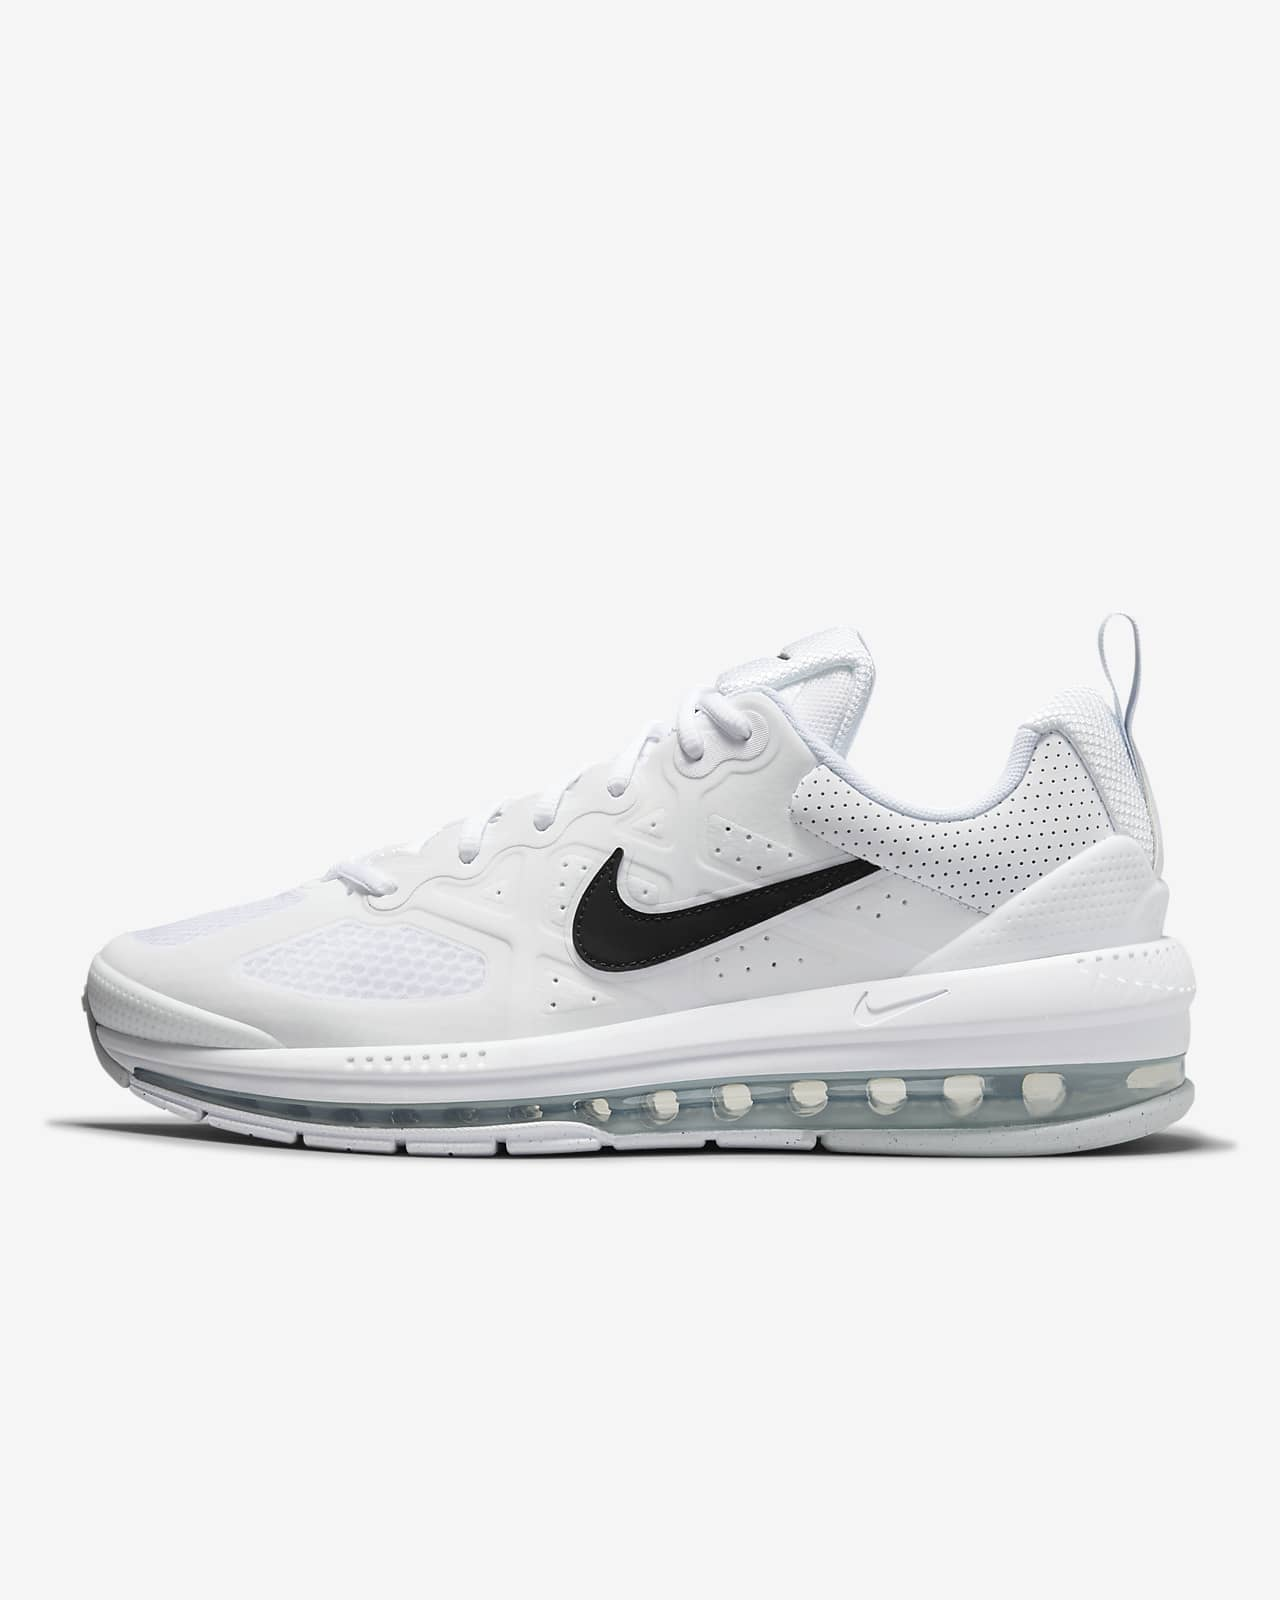 Chaussures Nike Air Max Genome pour Homme